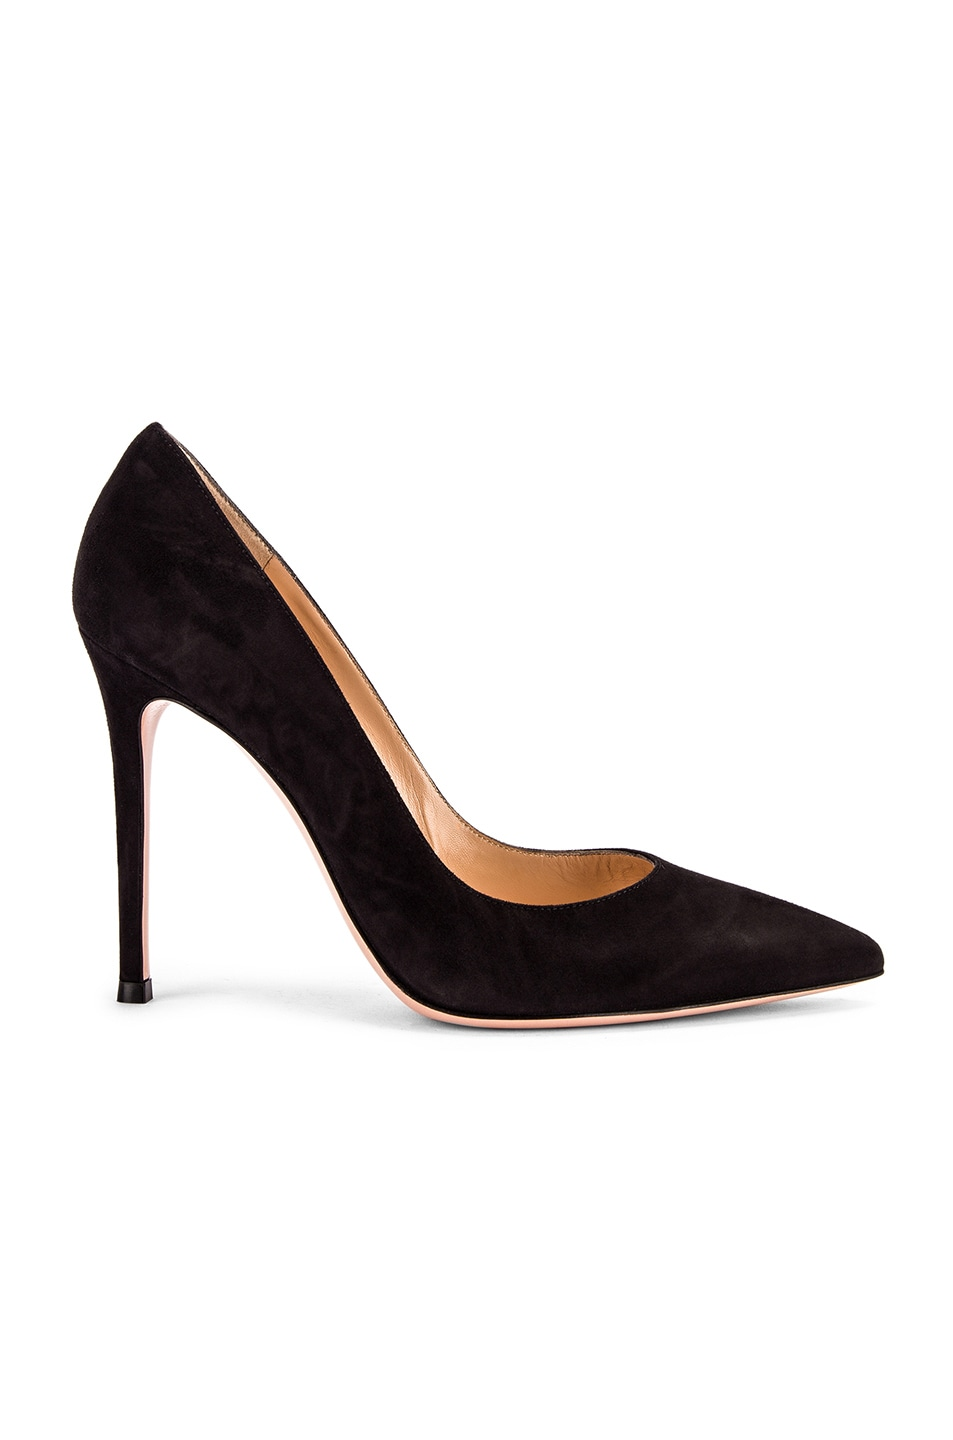 Image 1 of Gianvito Rossi Suede Gianvito Pumps in Black